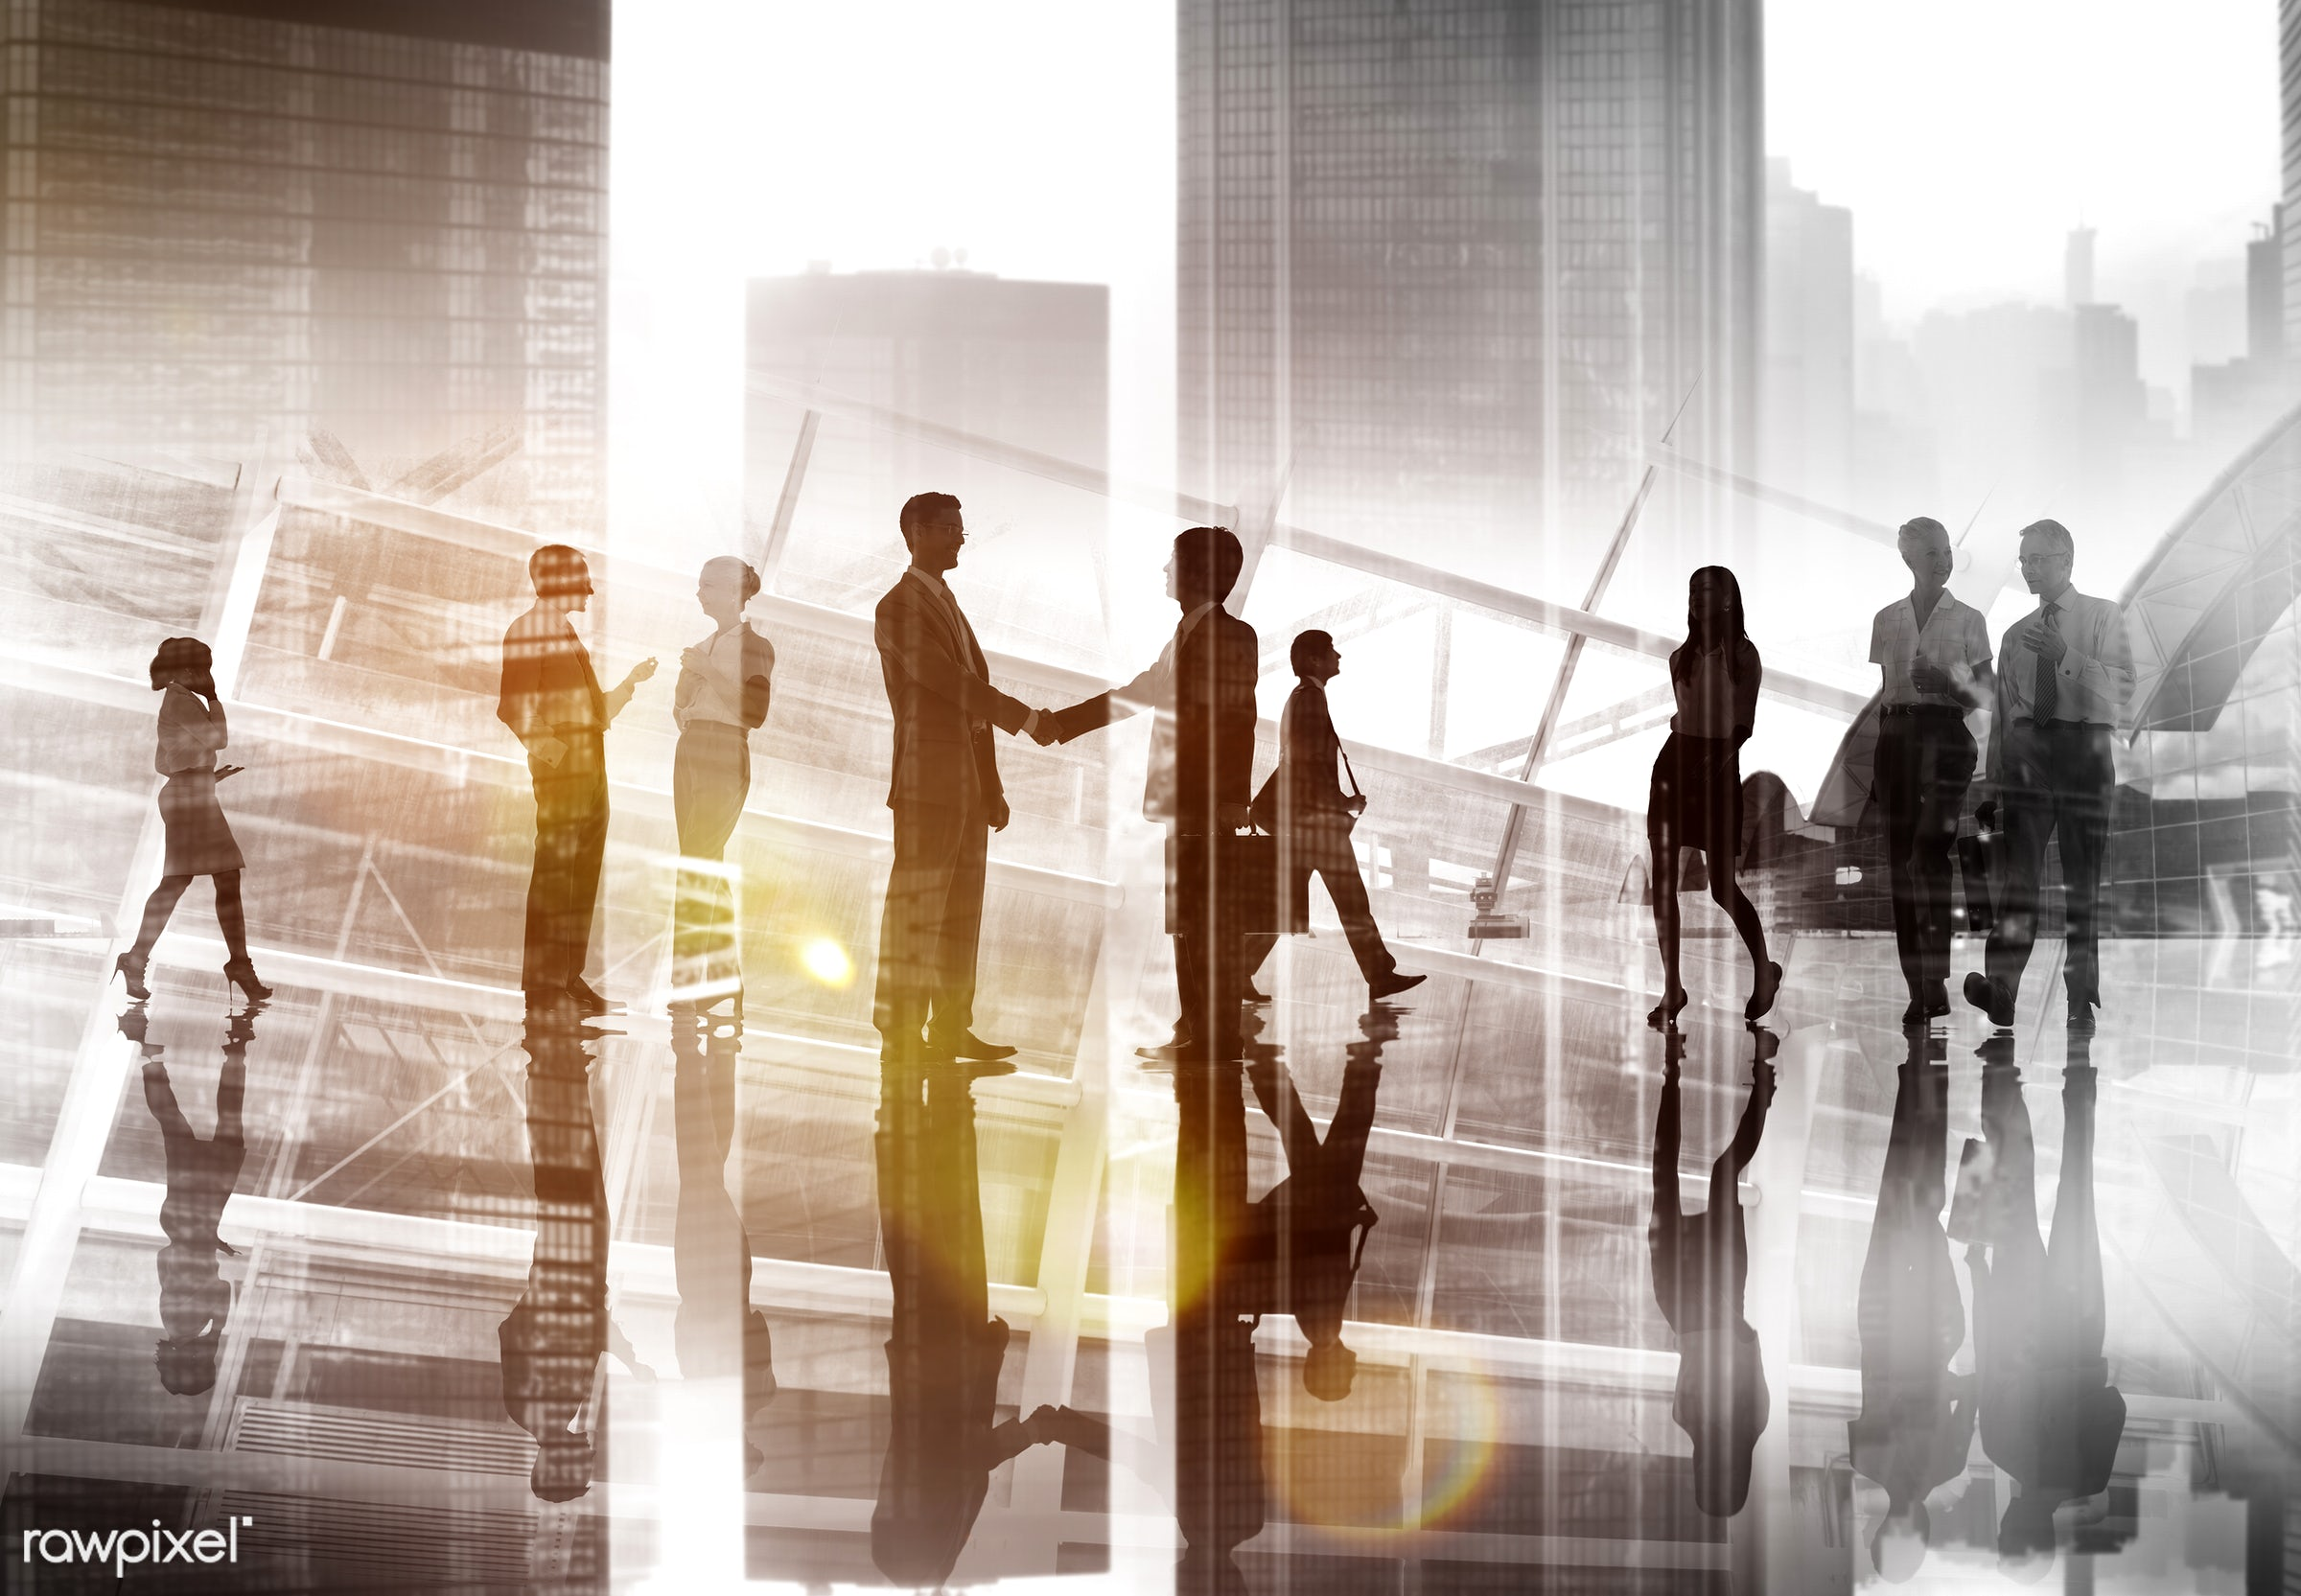 abstract, agreement, brainstorming, building, business, business people, businessmen, businesswomen, city, cityscape,...